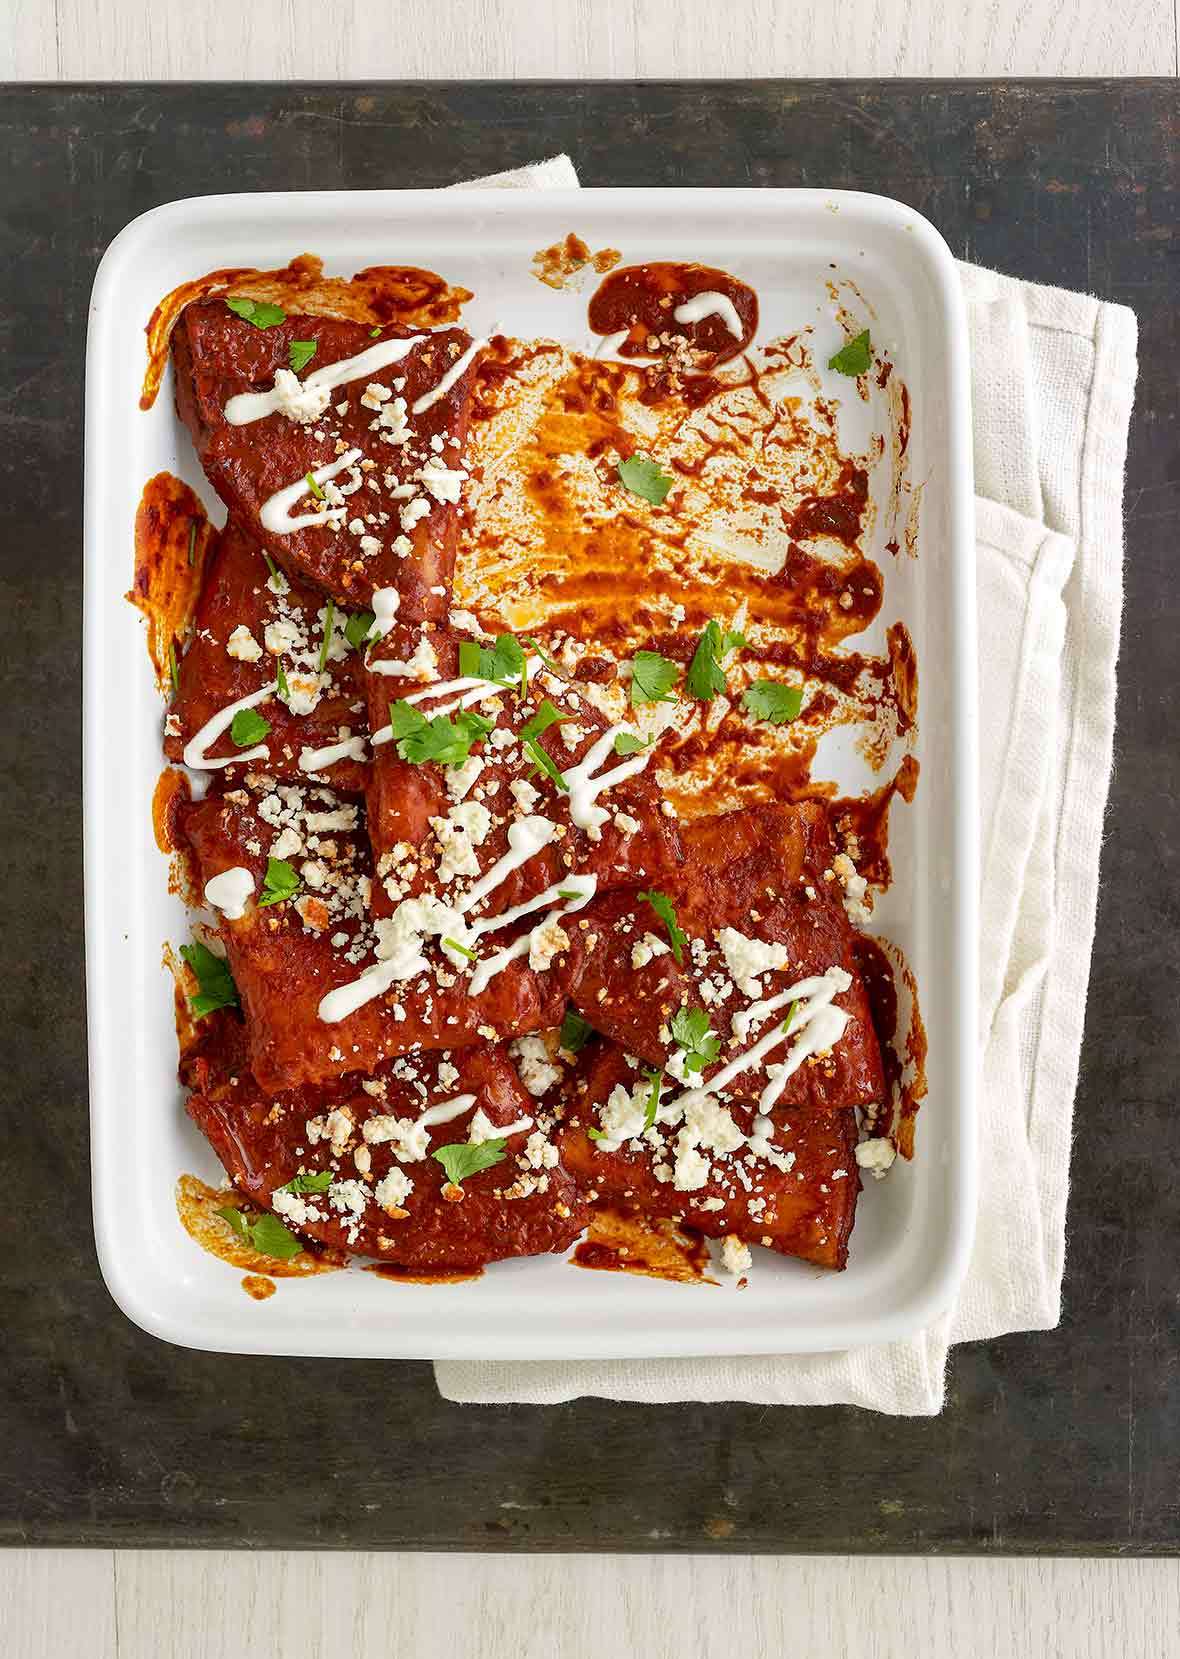 White casserole dish with cheese enchiladas, red sauce, sour cream, crumbled cotija cheese, and chopped cilantro